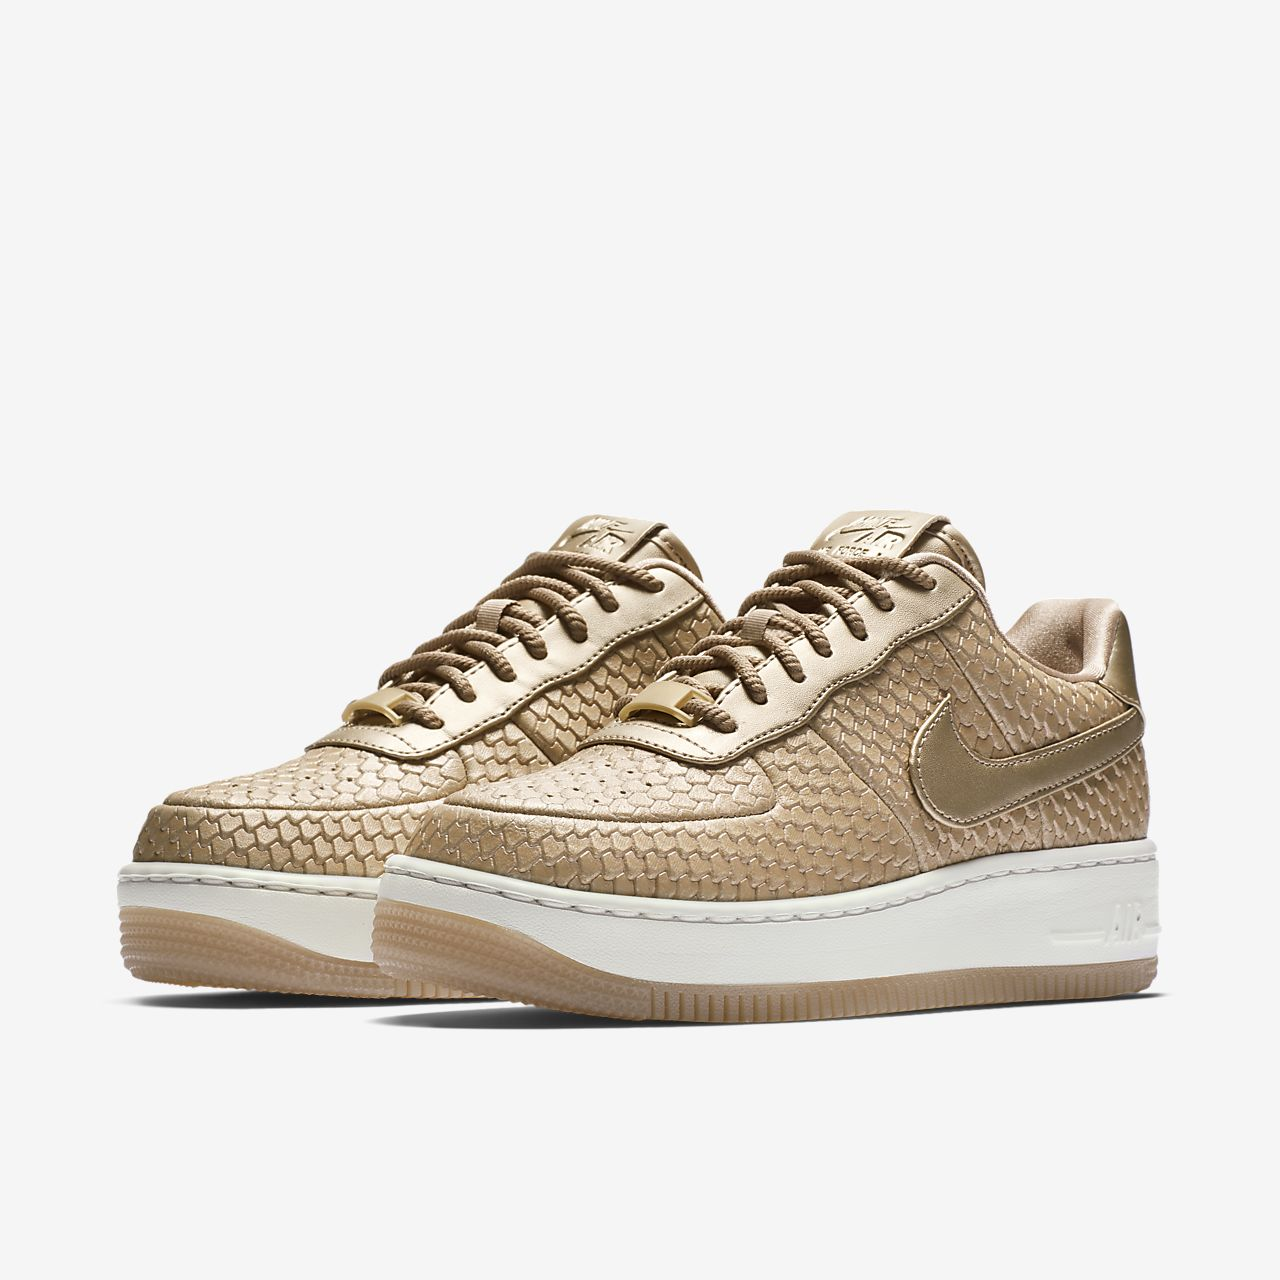 ... Chaussure Nike Air Force 1 Upstep Premium pour Femme